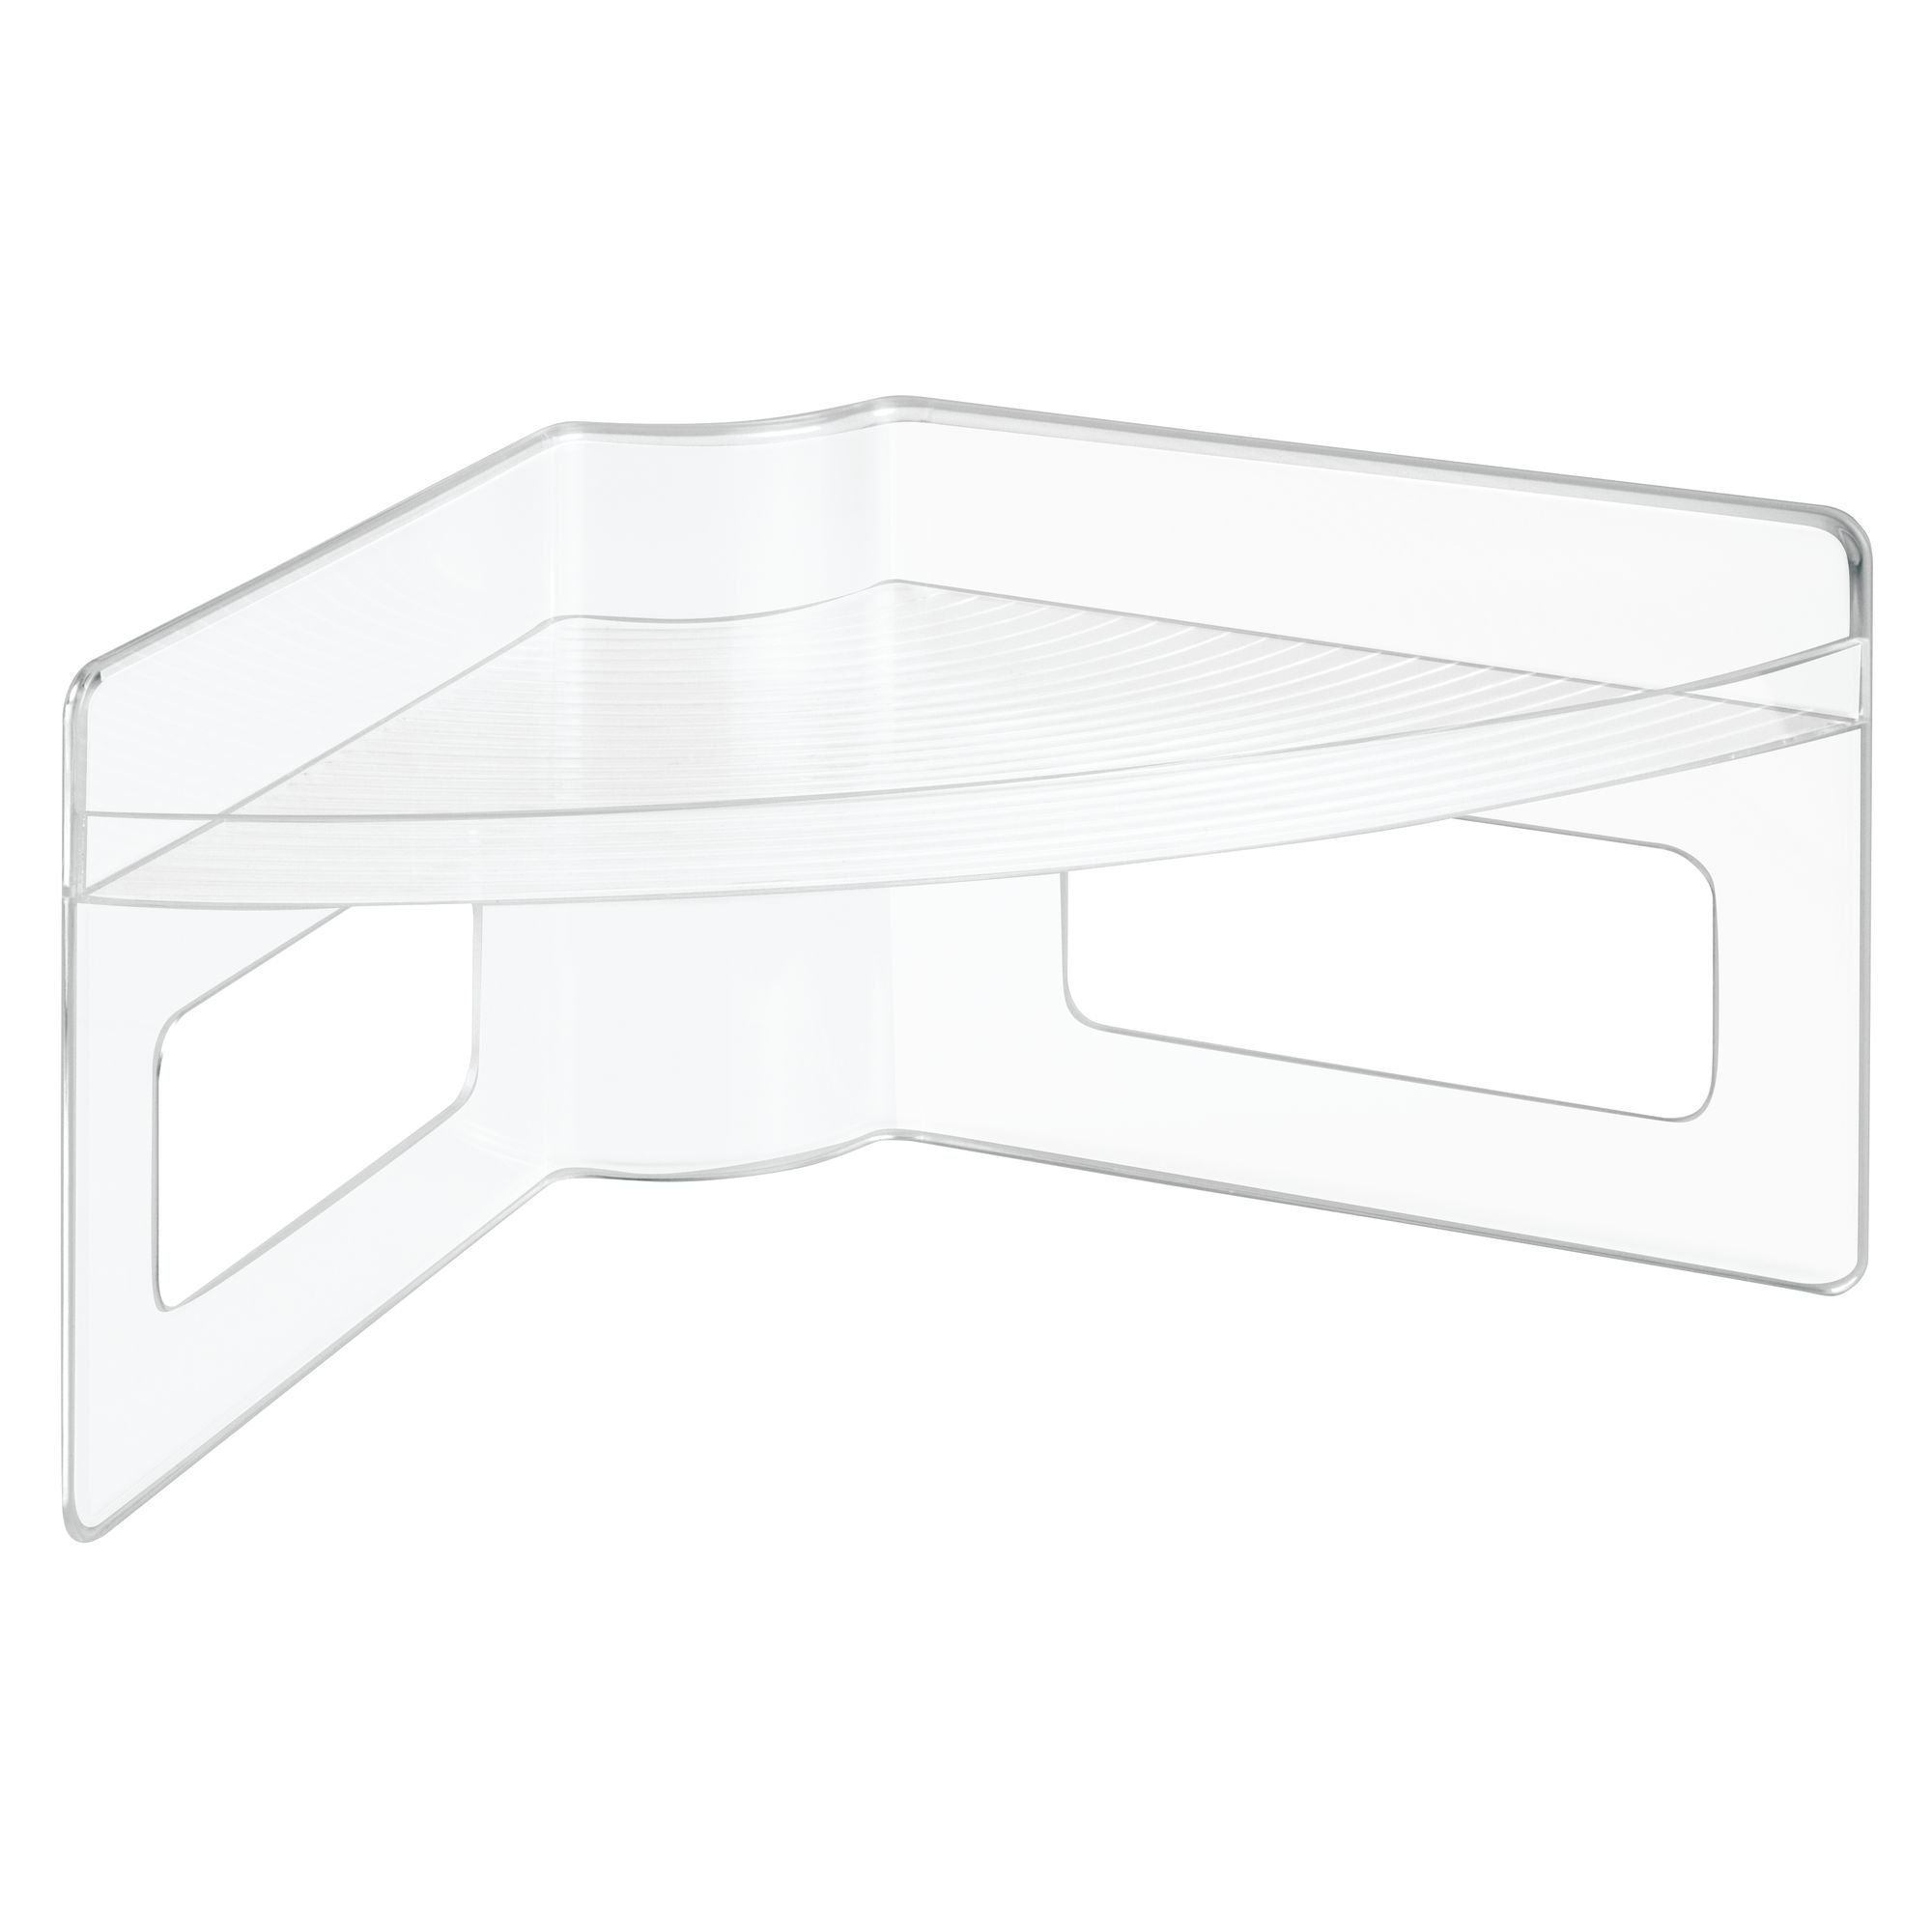 InterDesign 62650M4 Lazy Susan Plastic Storage Shelf with Handles for Organizing Kitchen Pantry Cabinets, Corner Spaces - Clear, Set of 4